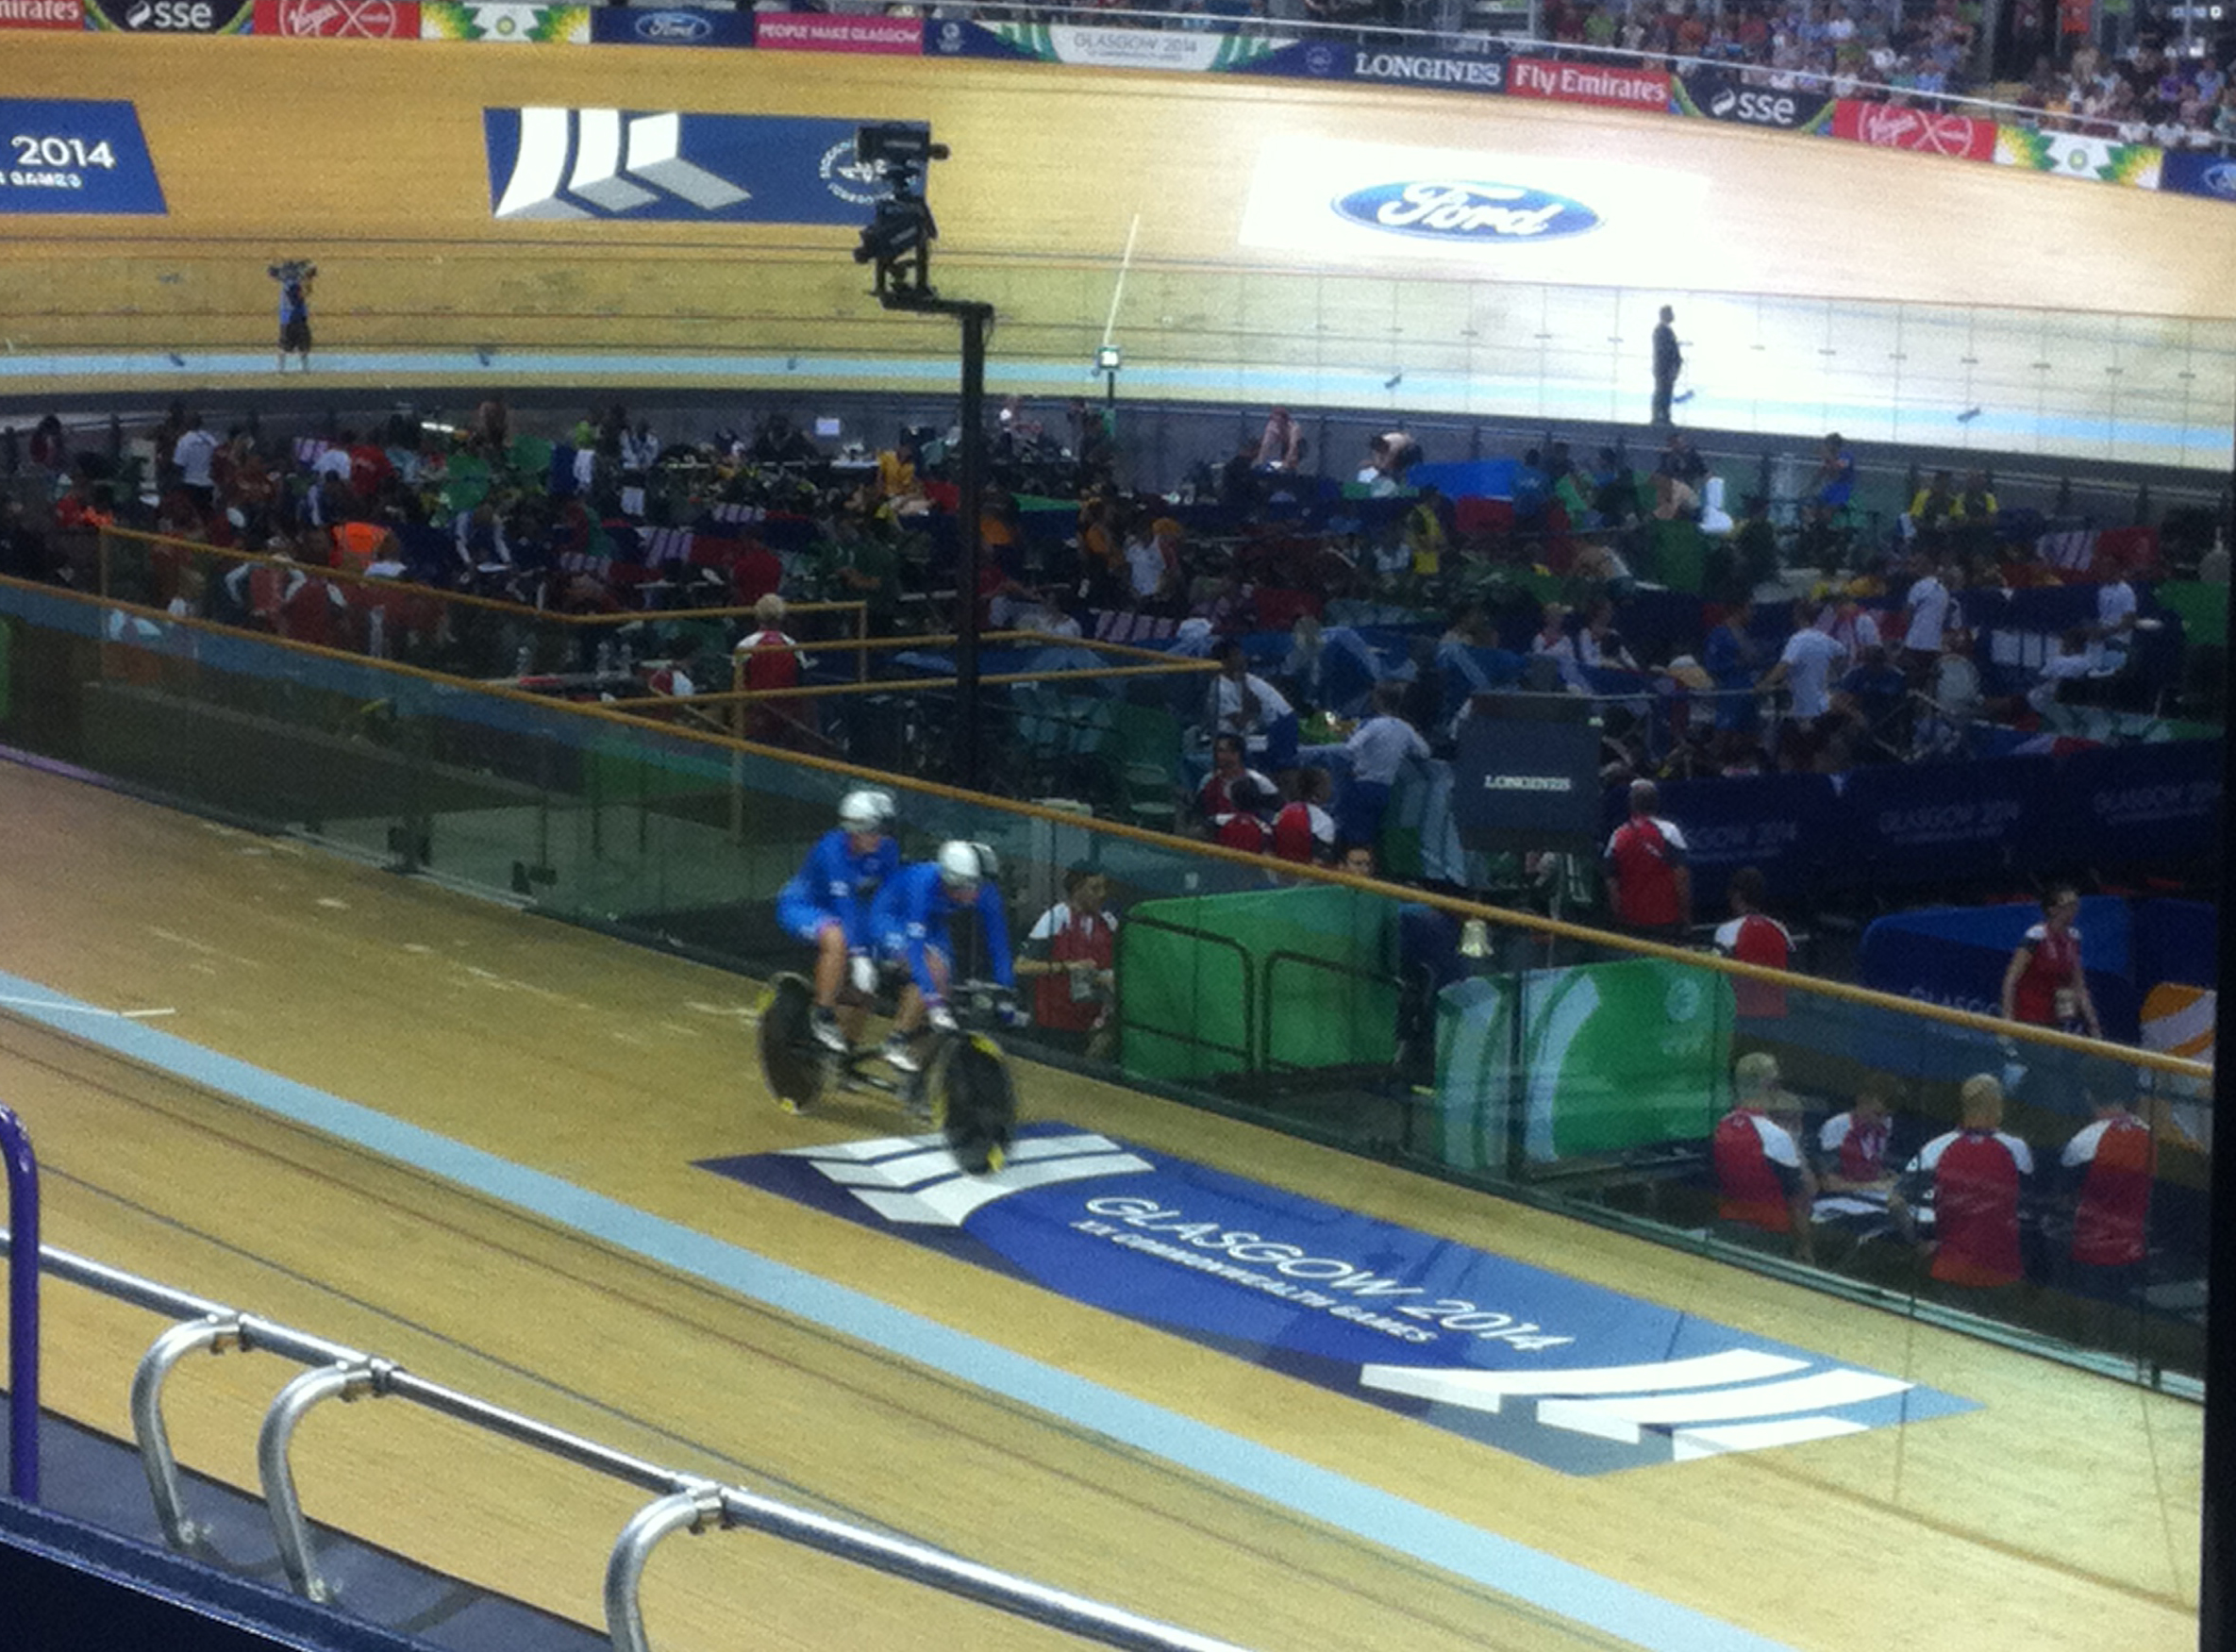 England's Sophie Thornhill Takes The Lead